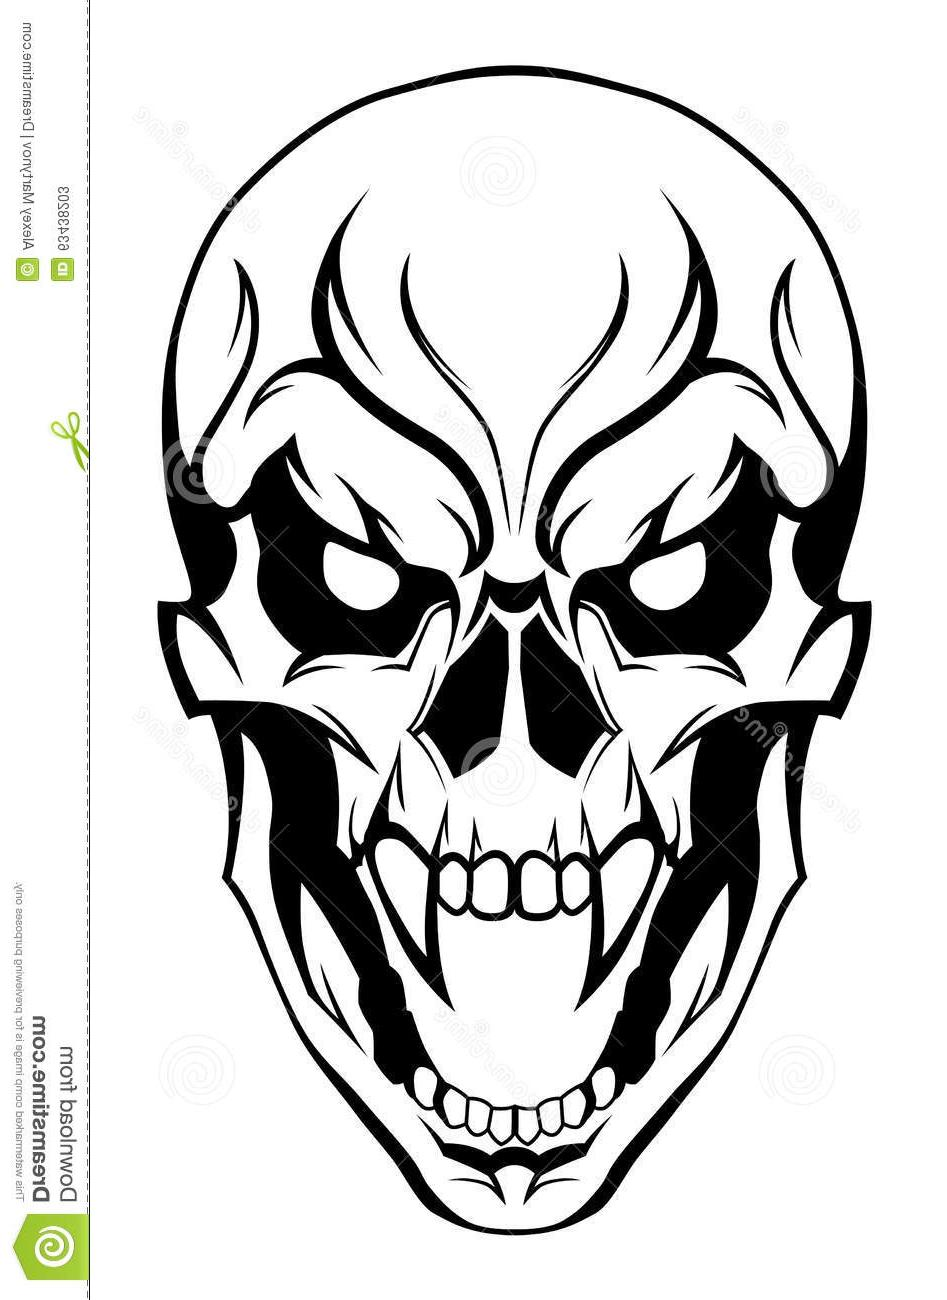 947x1300 Hd Drawings Of Skulls On Fire Vector Free Free Vector Art